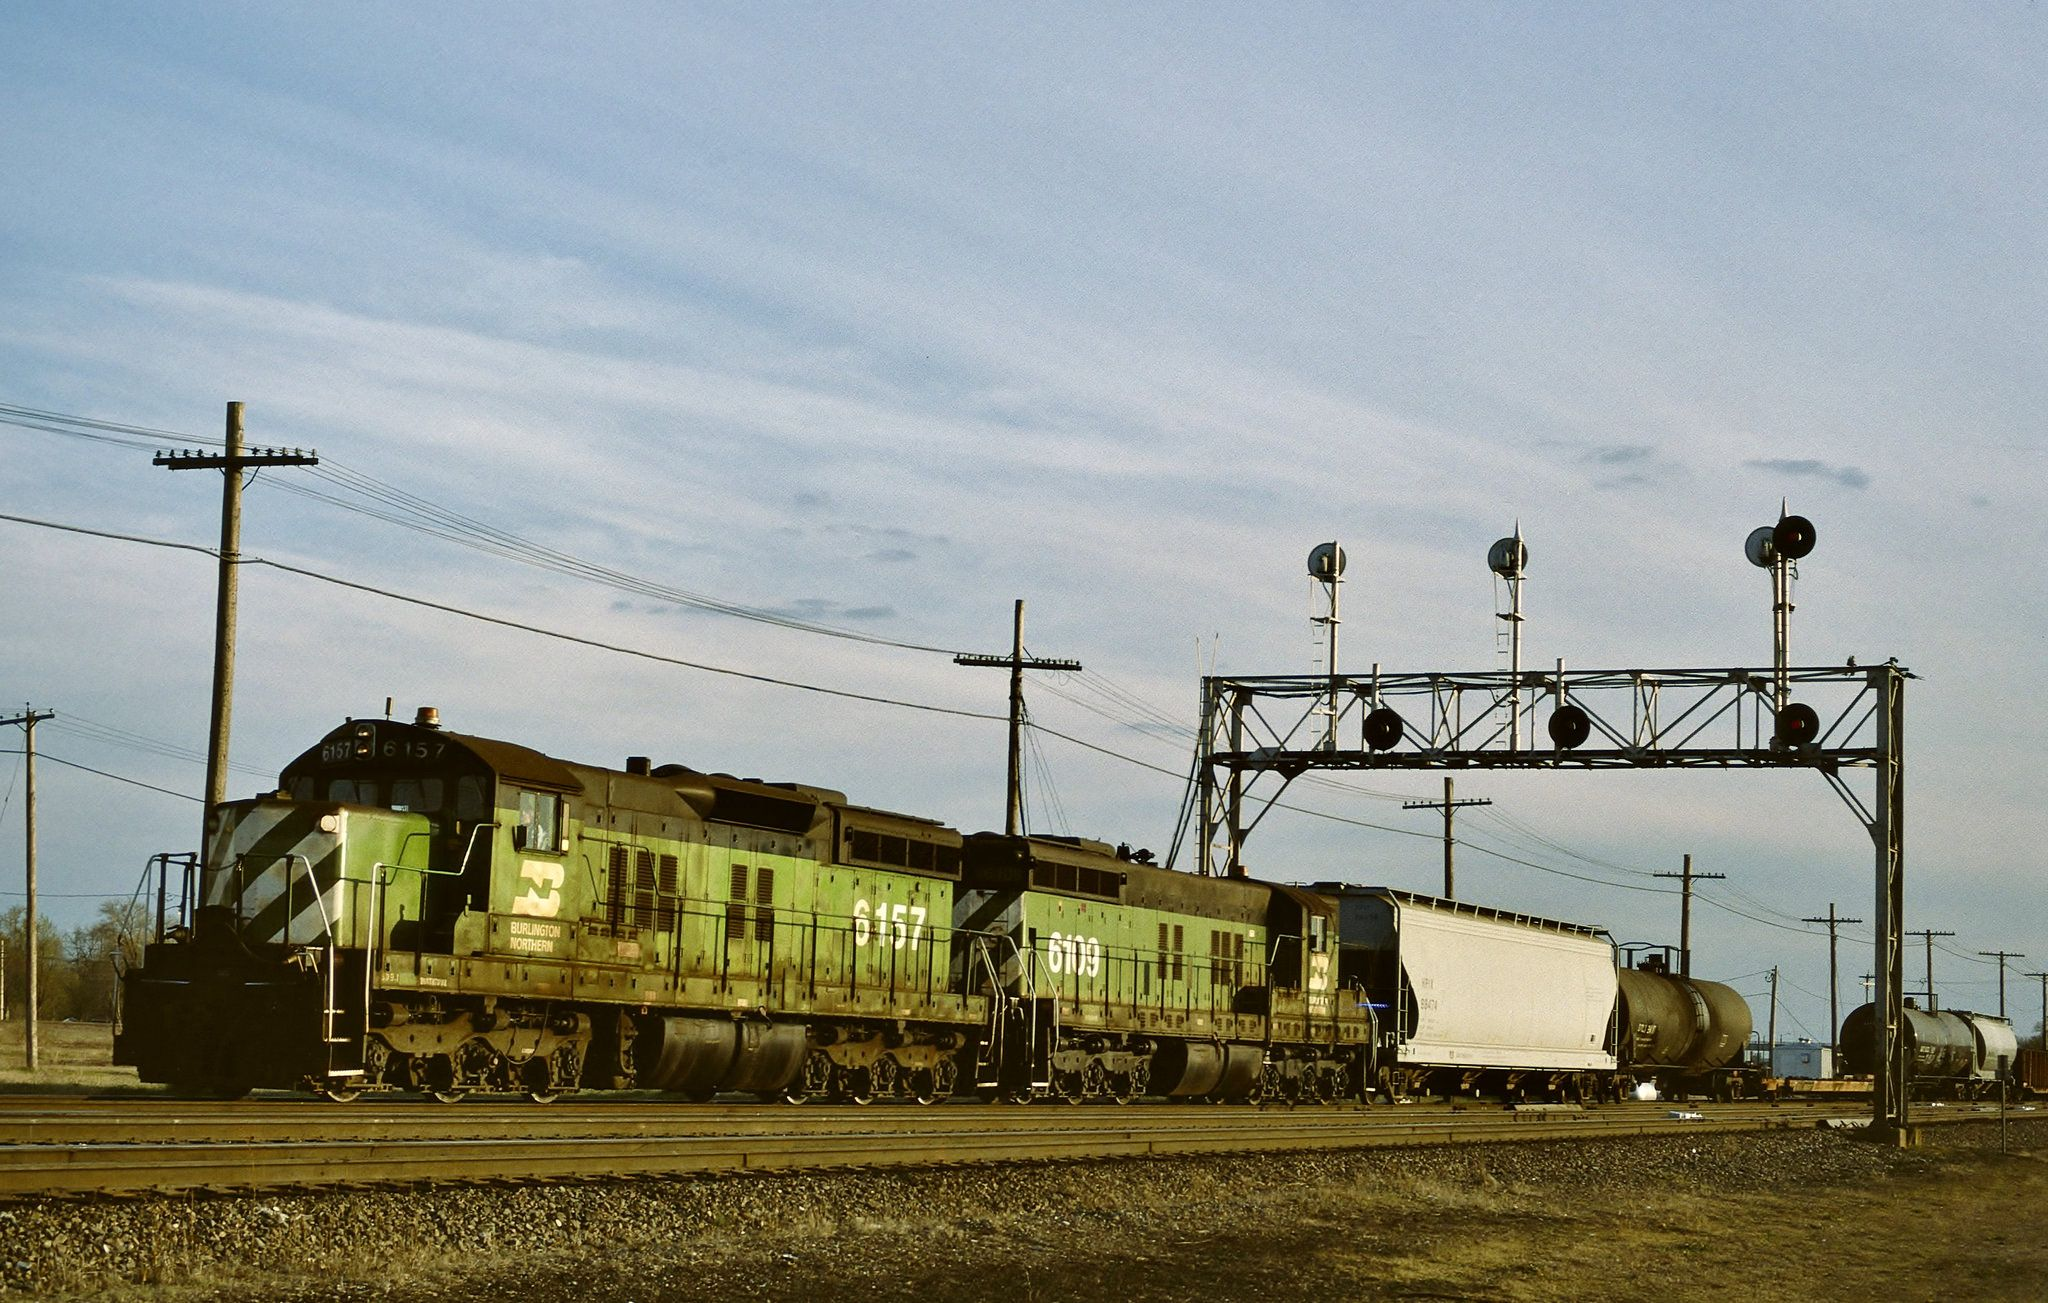 Bn 6157 in galesburg illinois on april 22 1995